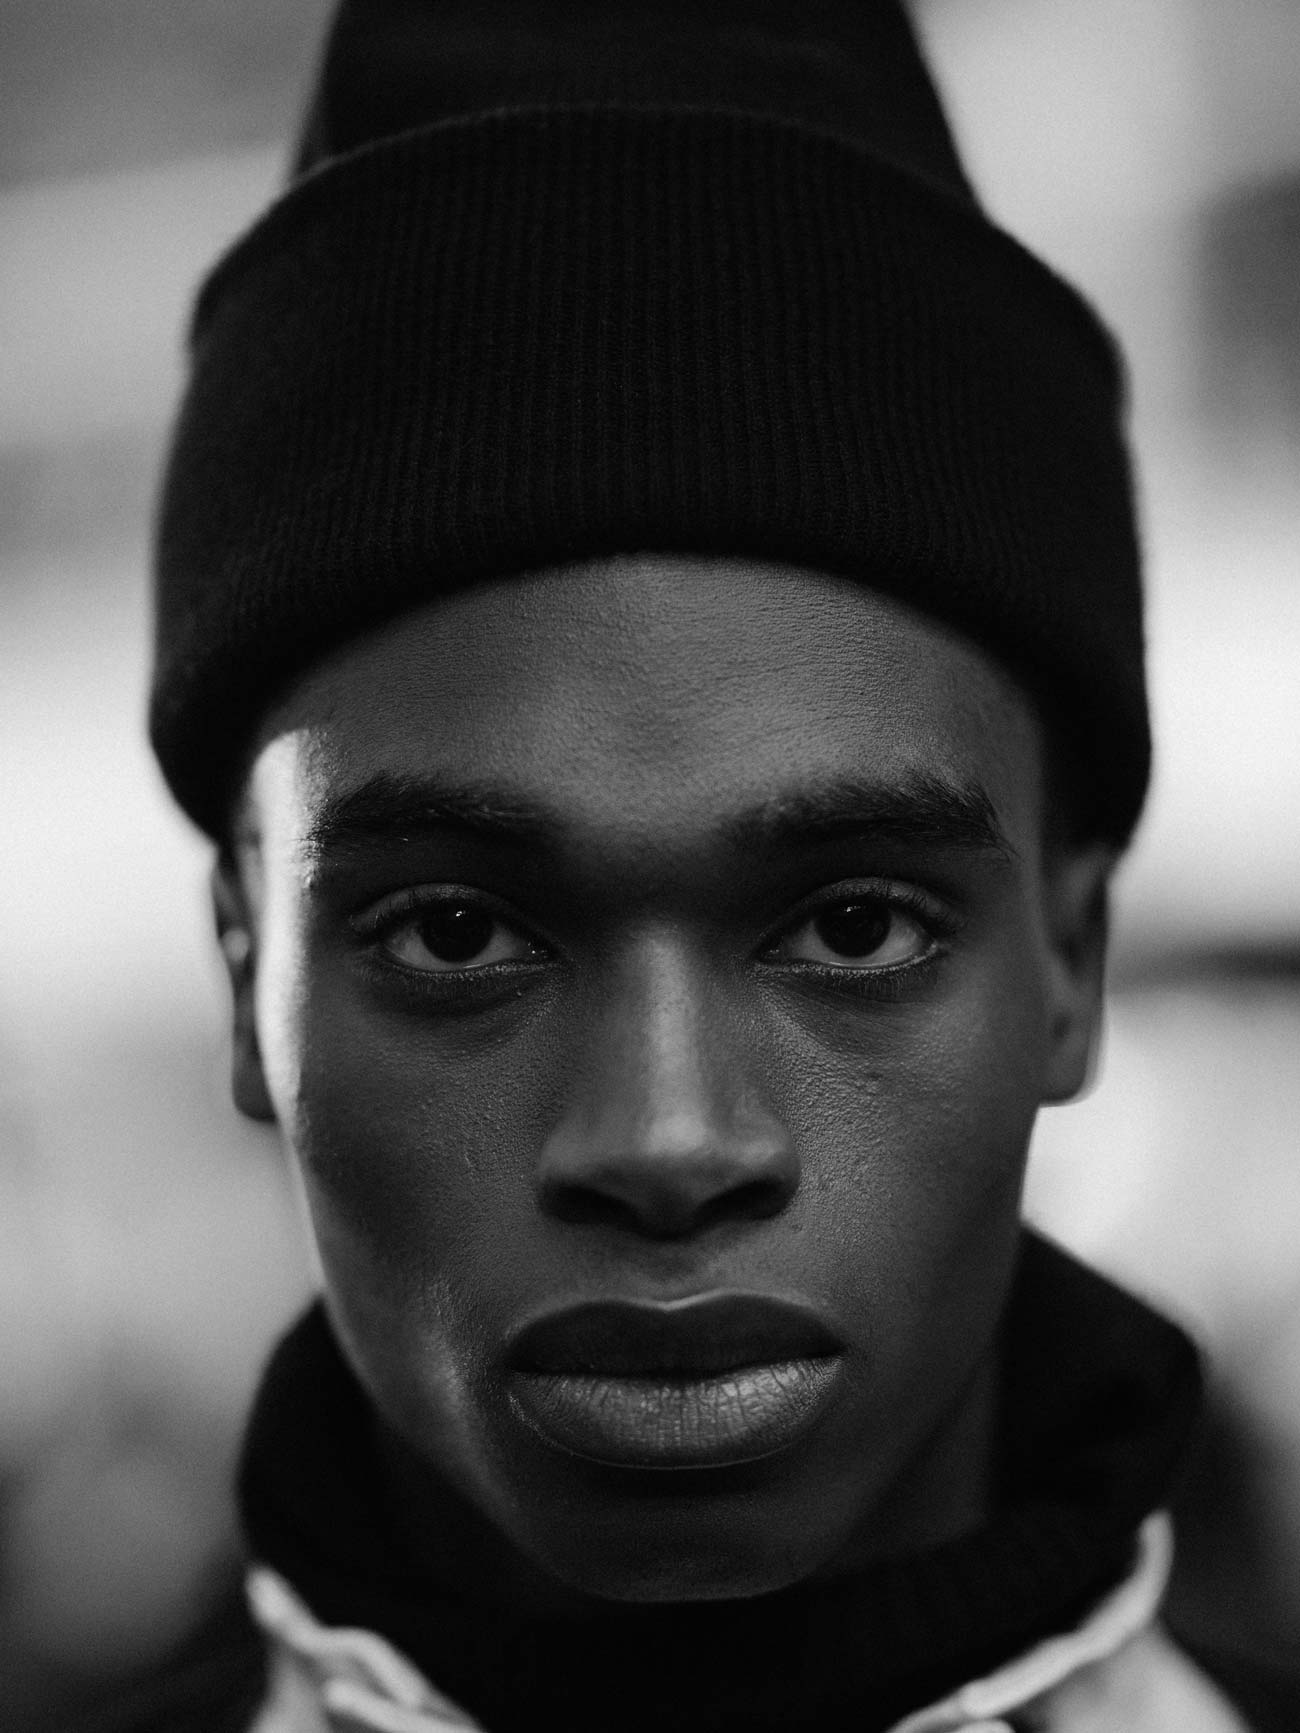 Bakay Diaby by Adam Katz Sinding - Top Black Male Model Story for Sagaboi and Sagaboi.com.